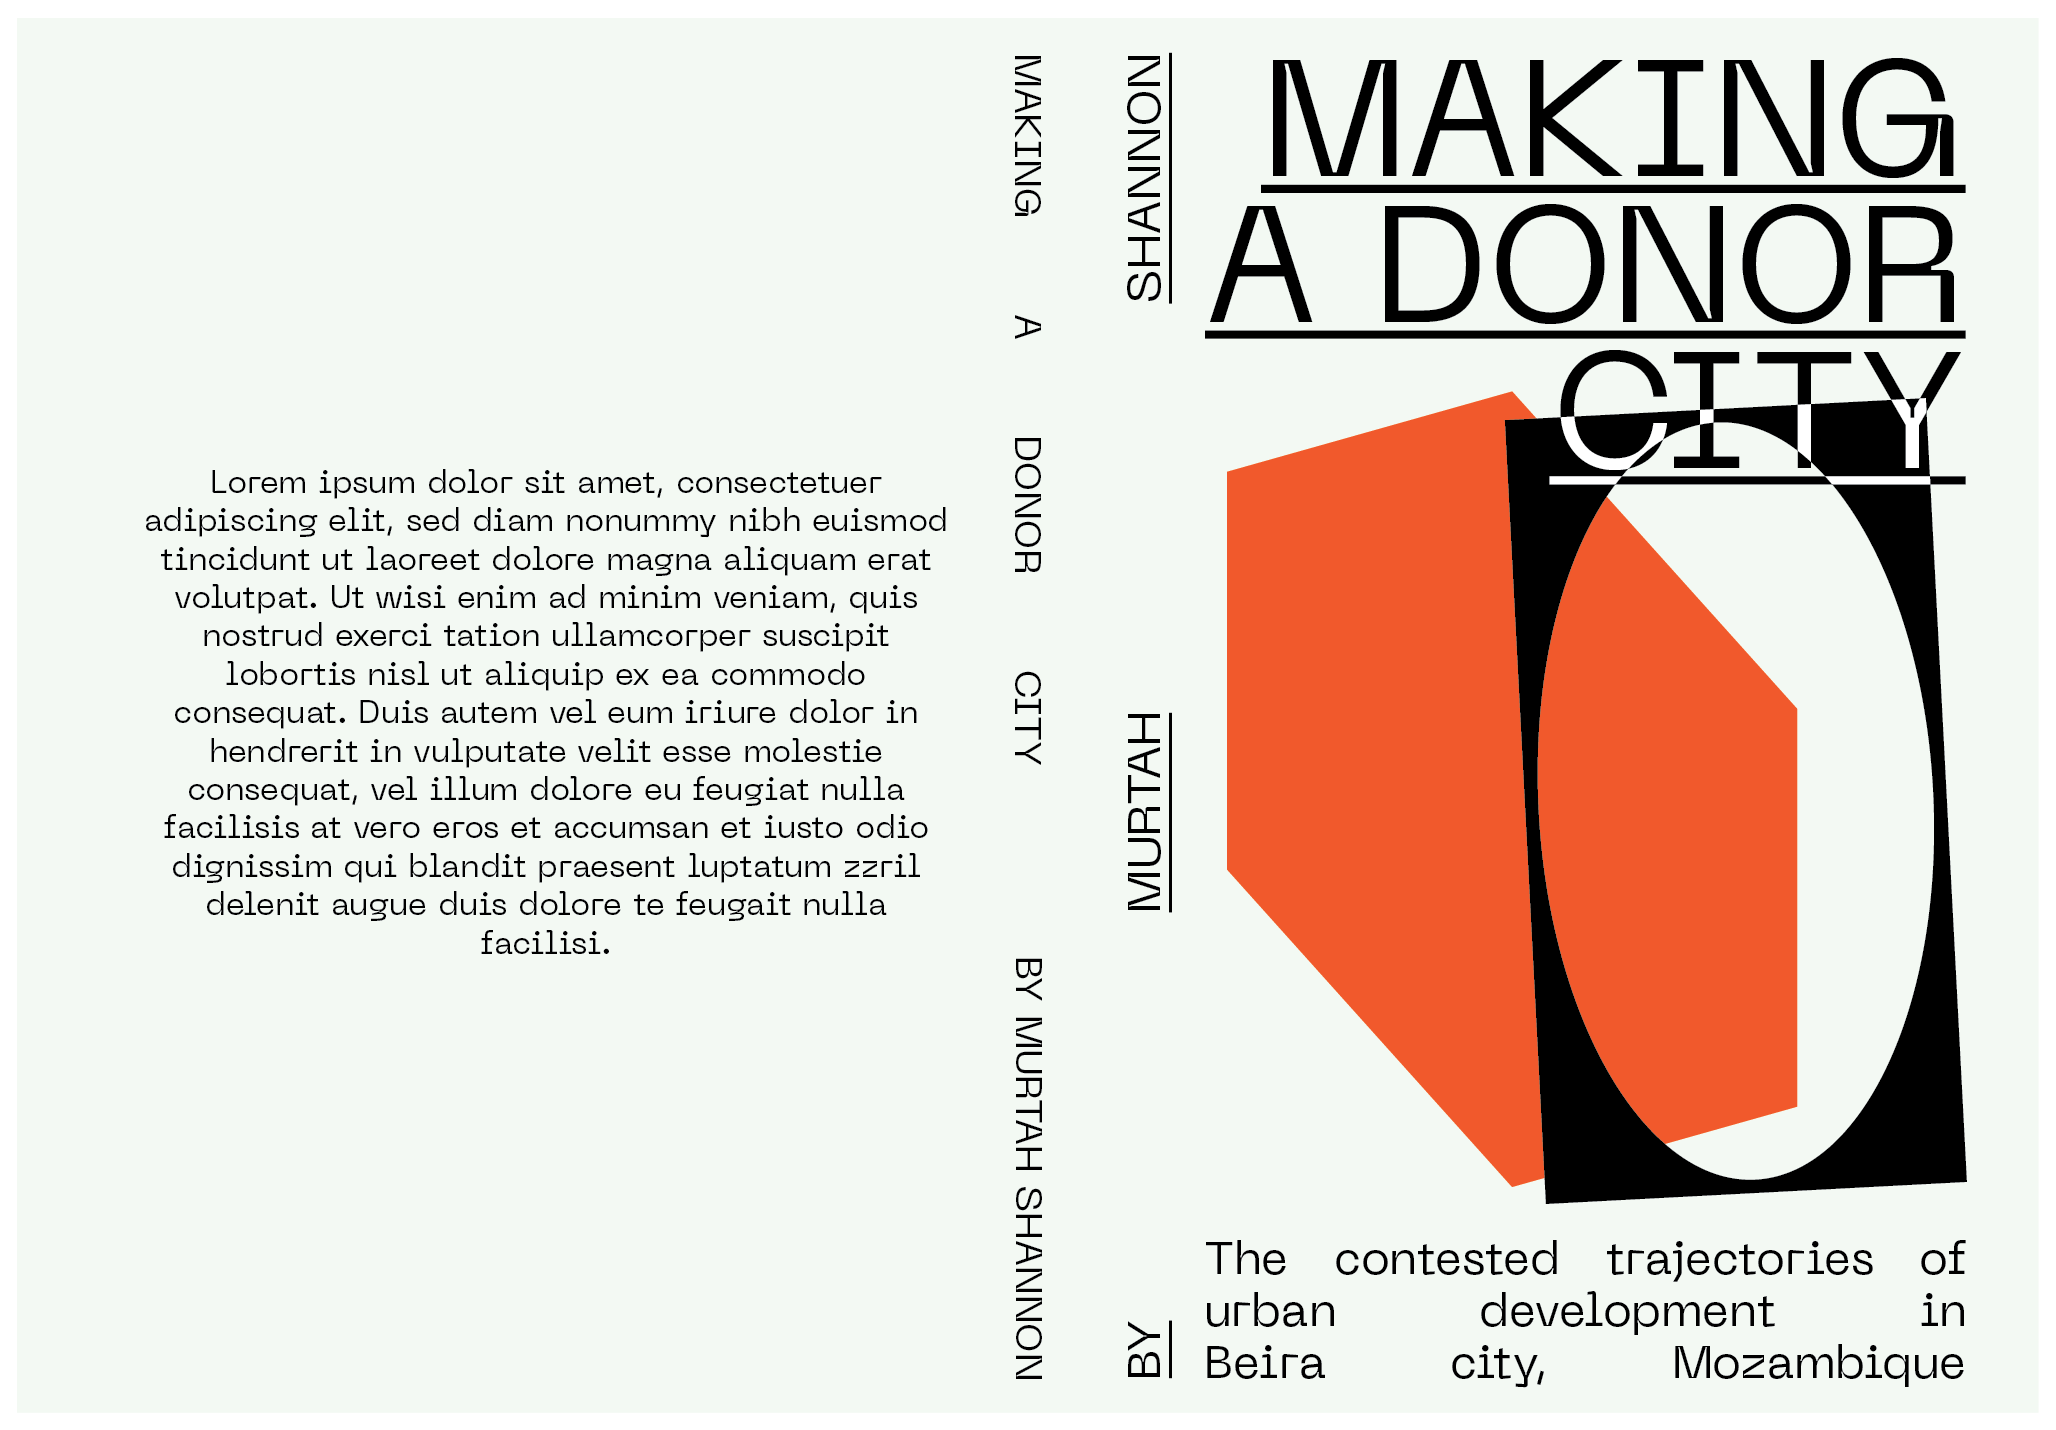 Making A Donor City